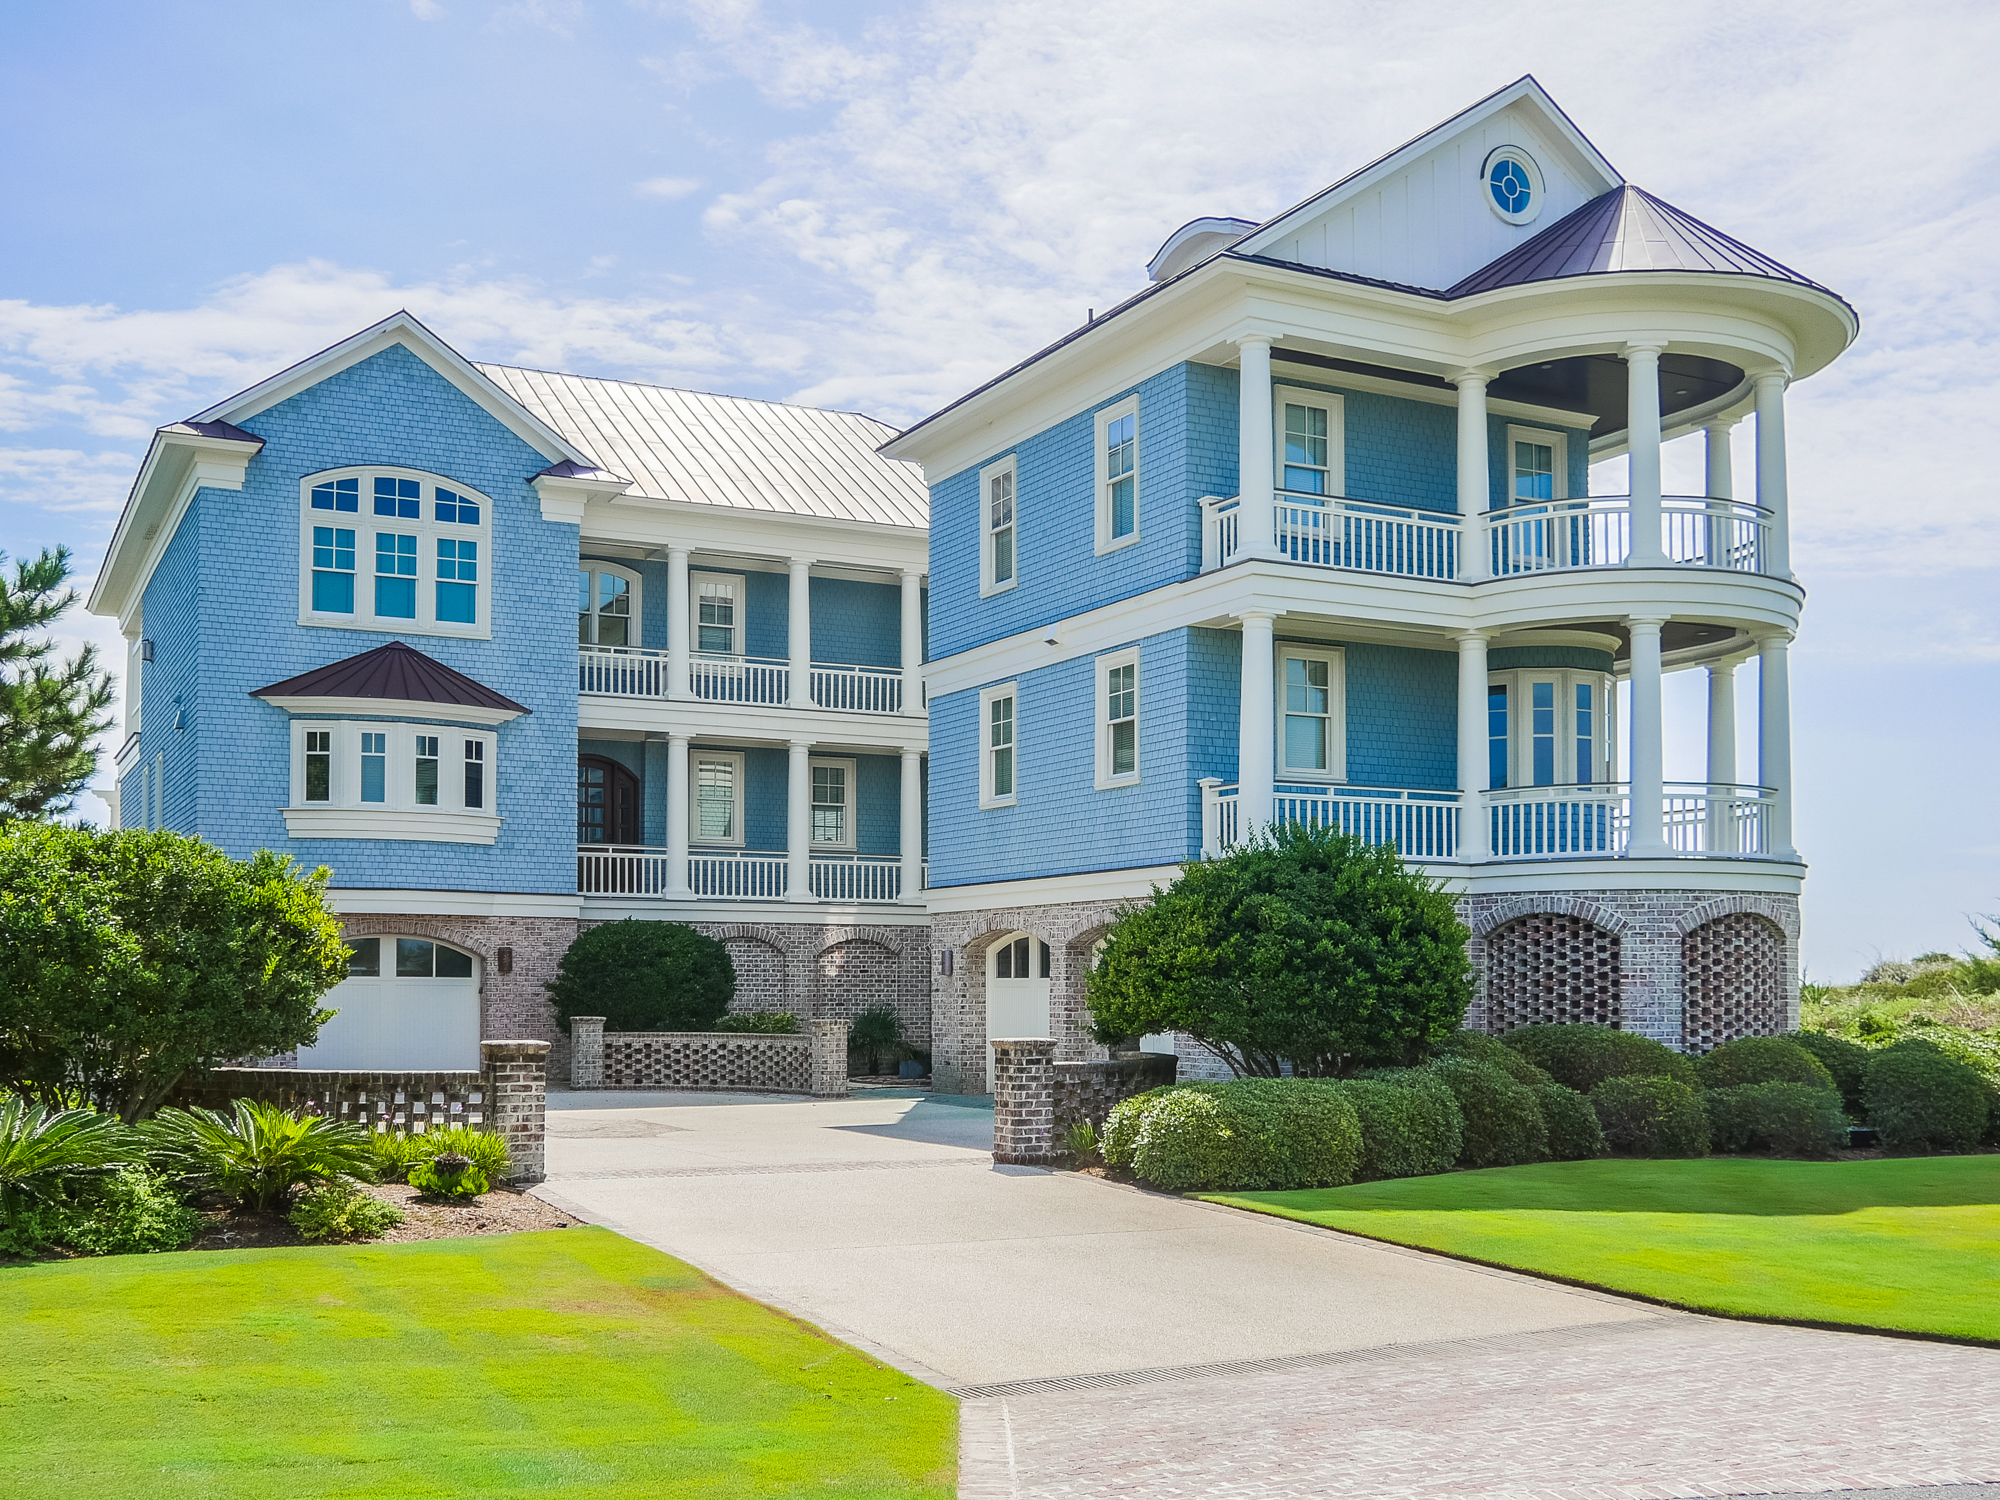 Single Family Home for Sale at Magnificent Oceanfront Residence 520 Beach Road N Wilmington, North Carolina, 28411 United States